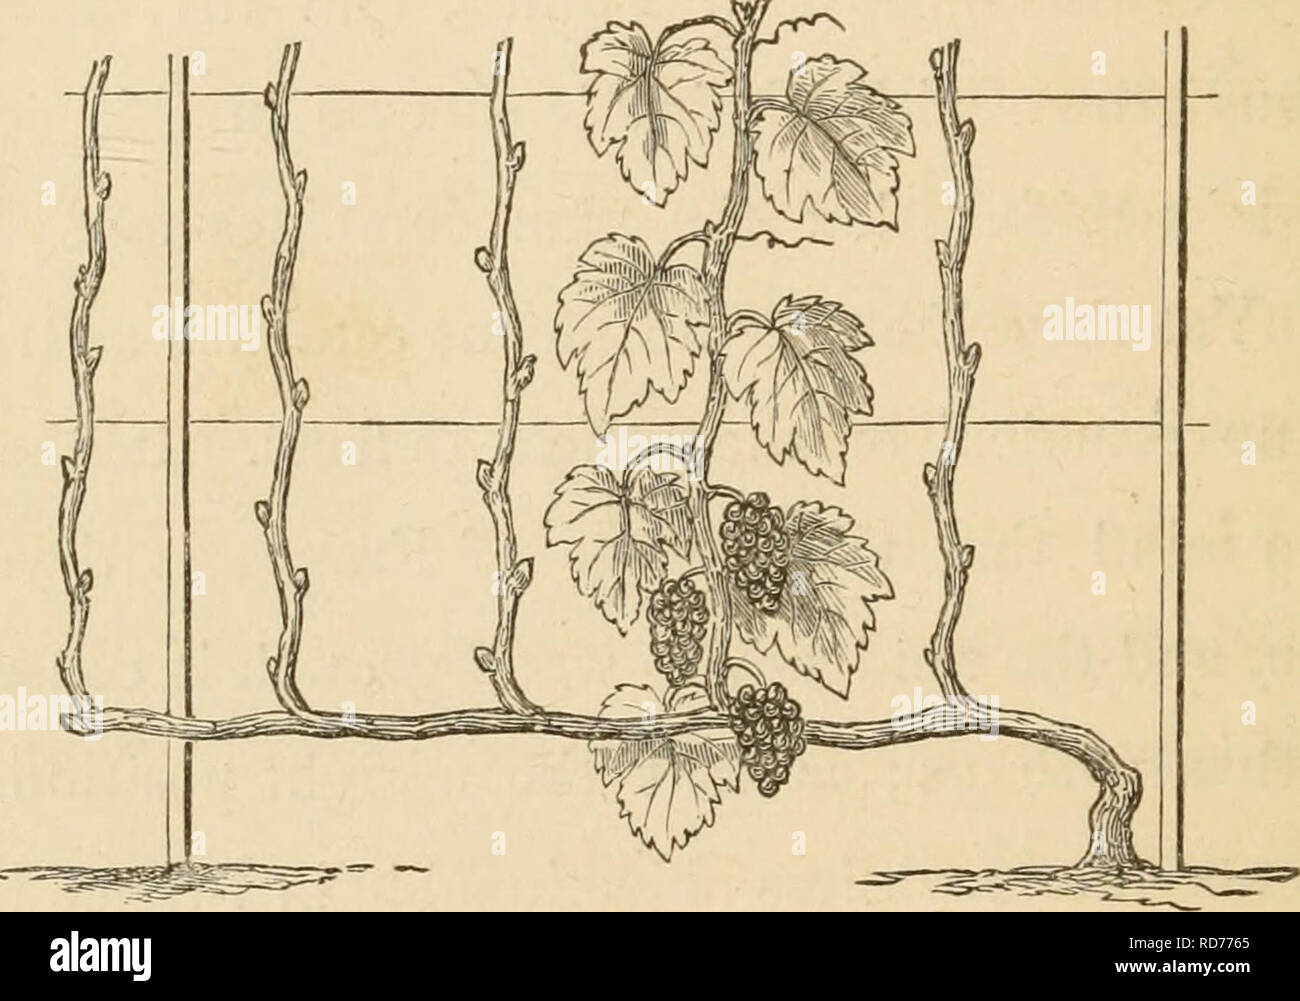 hight resolution of viticulture 130 culture of the grape winter it is true a vine with the two arms can be bent backwards to the ground so that the trunk